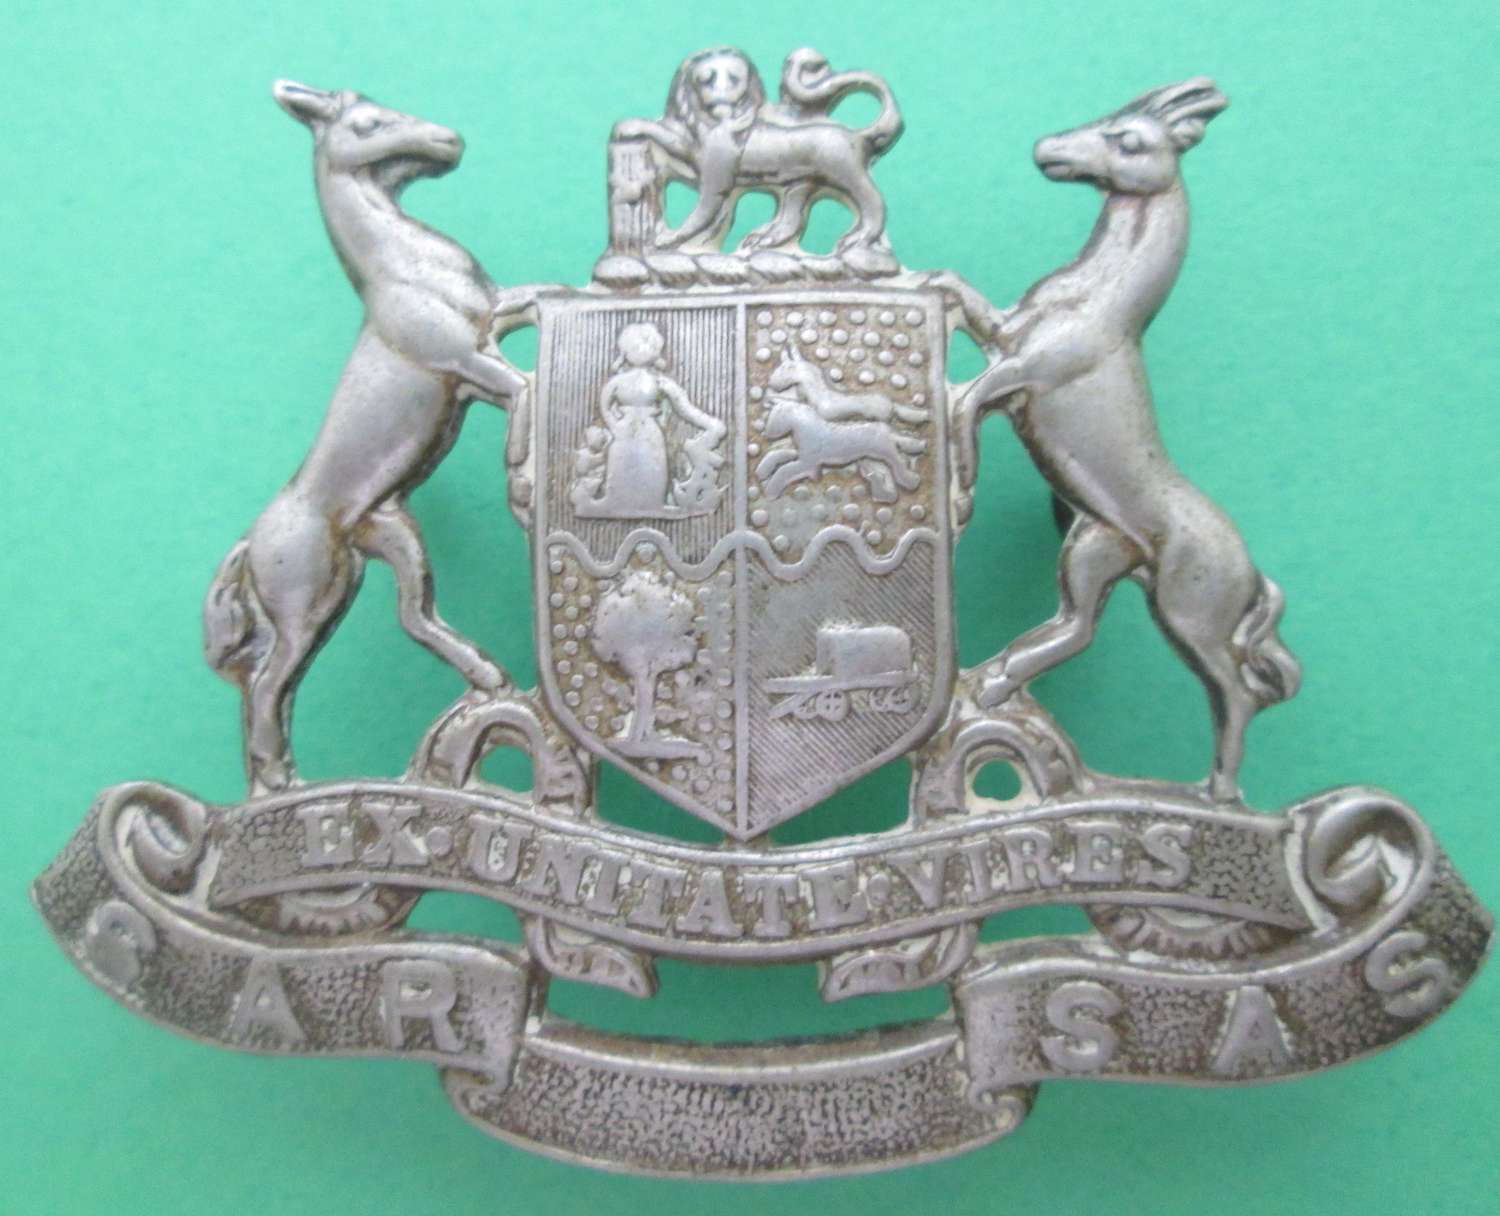 A SOUTH AFRICAN DOCKS AND RAILWAYS RIFLES CAP BADGE